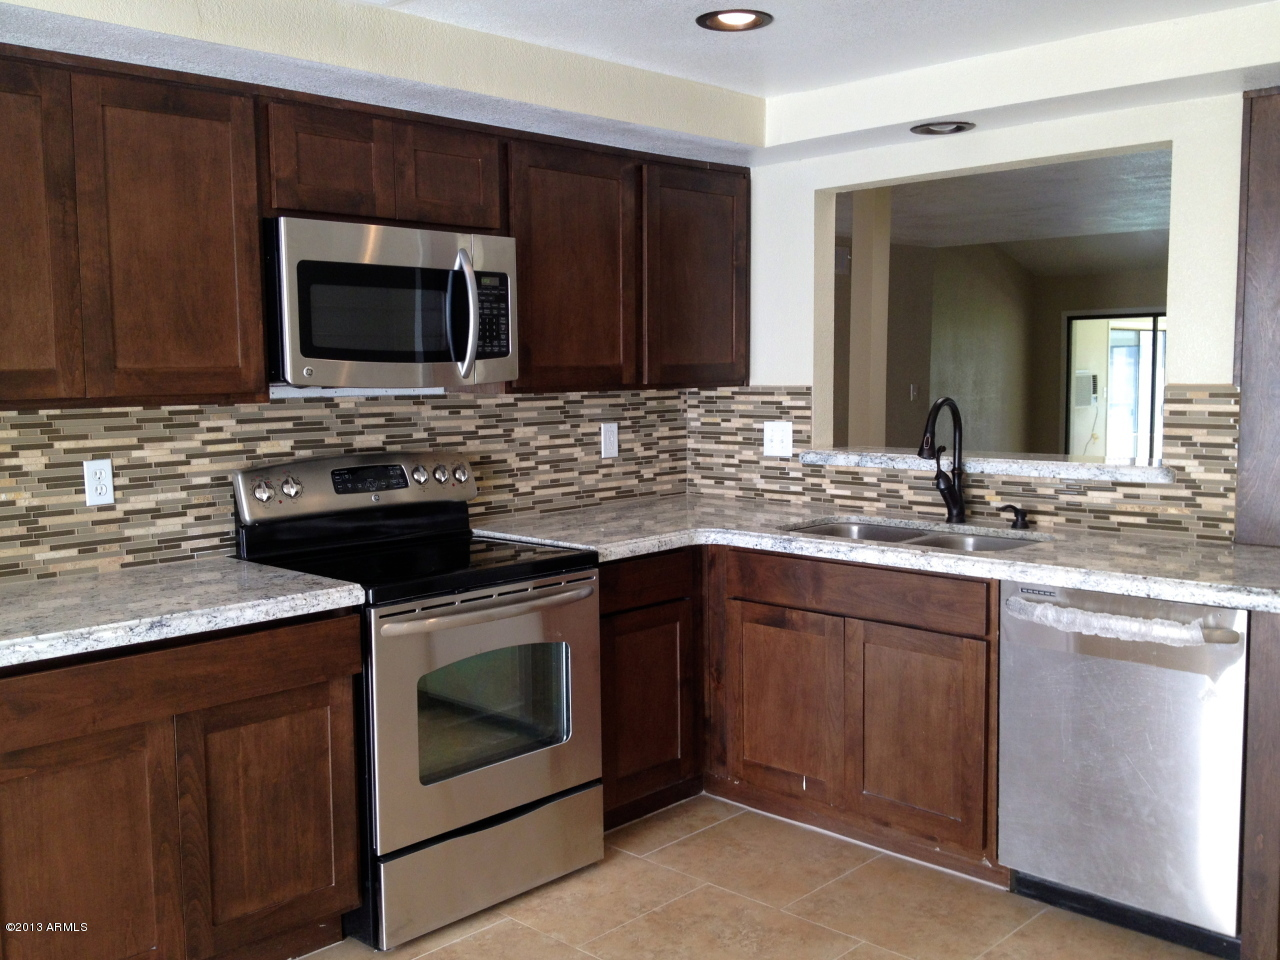 Kitchen Remodel Phoenix Ideas Kitchen & Bathroom Remodeling Portfolio  Phoenix Az